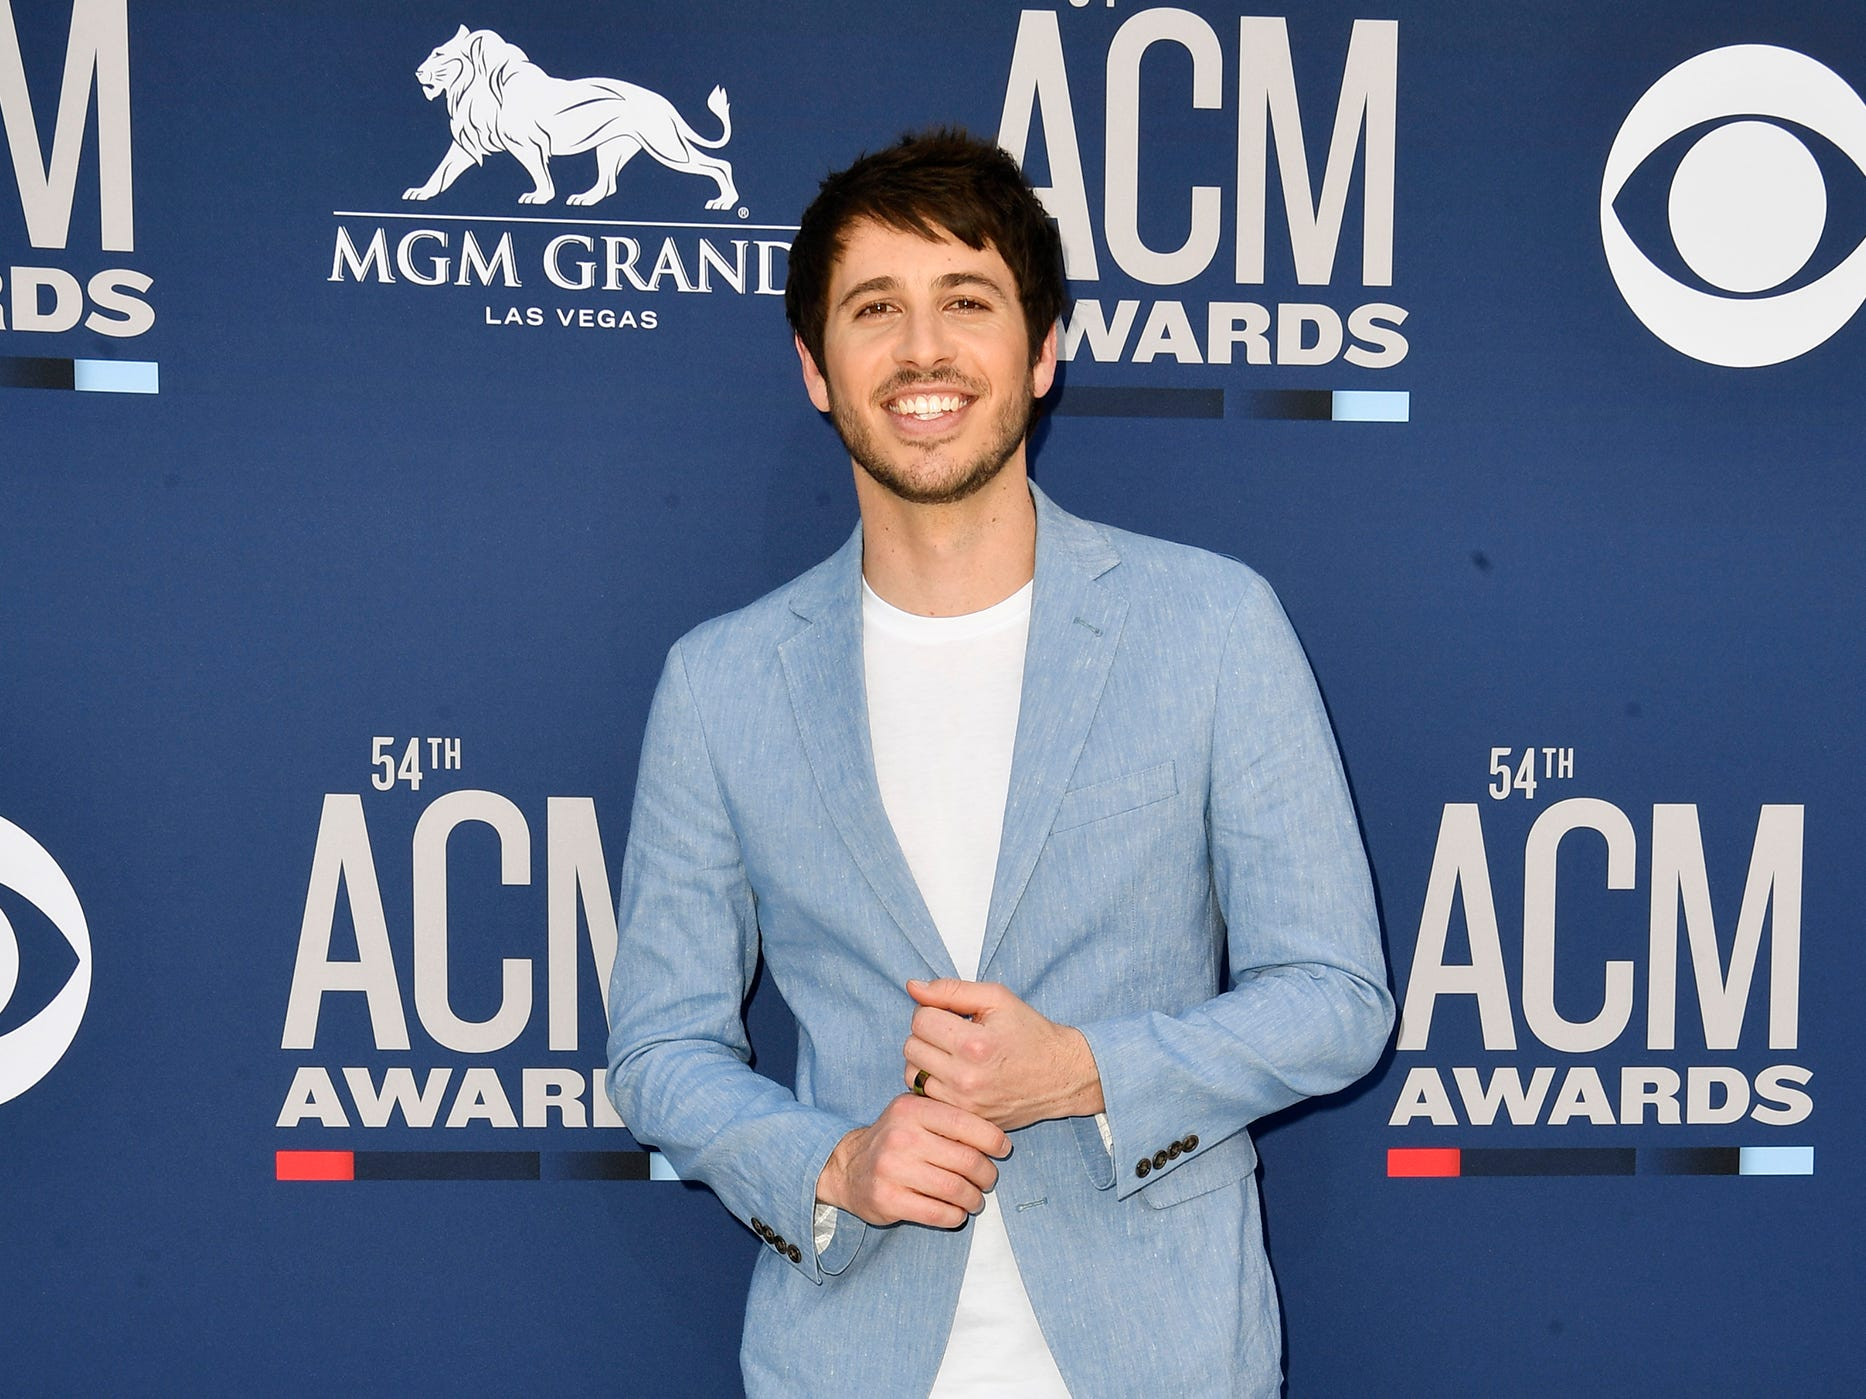 Morgan Evans walks the red carpet at the 54TH Academy of Country Music Awards Sunday, April 7, 2019, in Las Vegas, Nev.